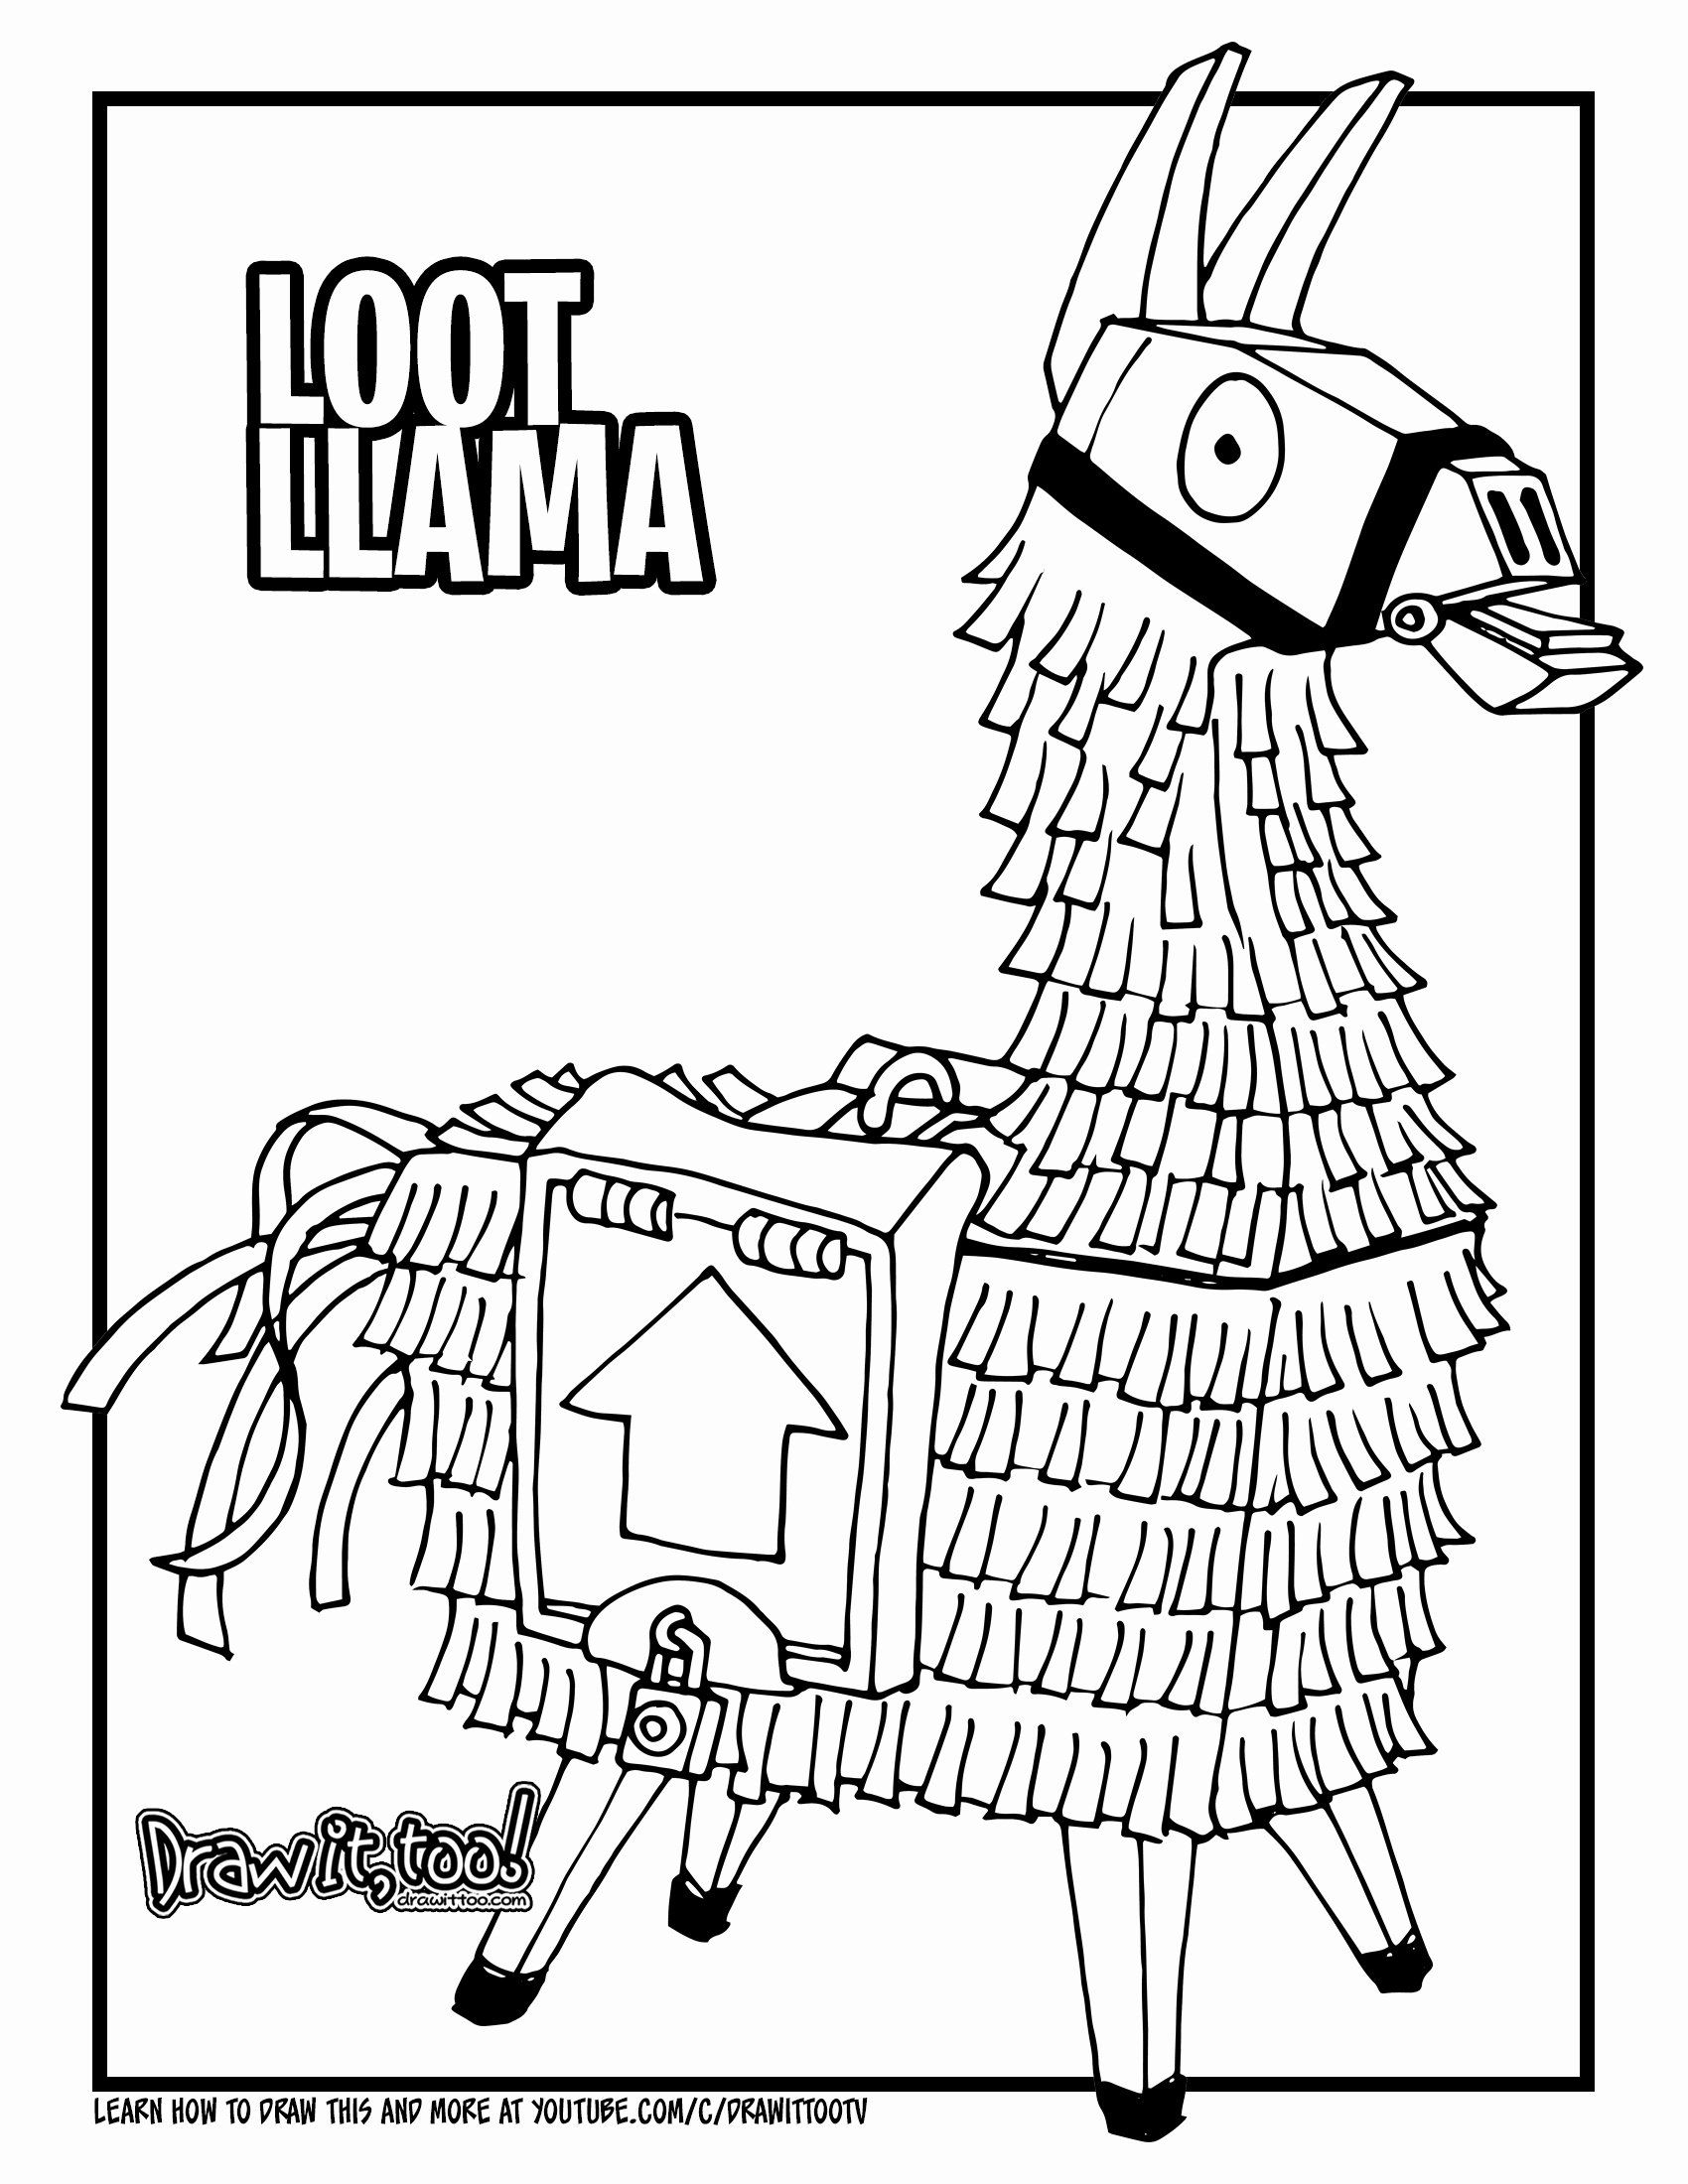 Fortnite Llama Coloring Page Inspirational How To Draw The Loot Llama Fortnite Battle Royale Drawing Tutorial Coloring Pages Coloring Books Llama Drawing